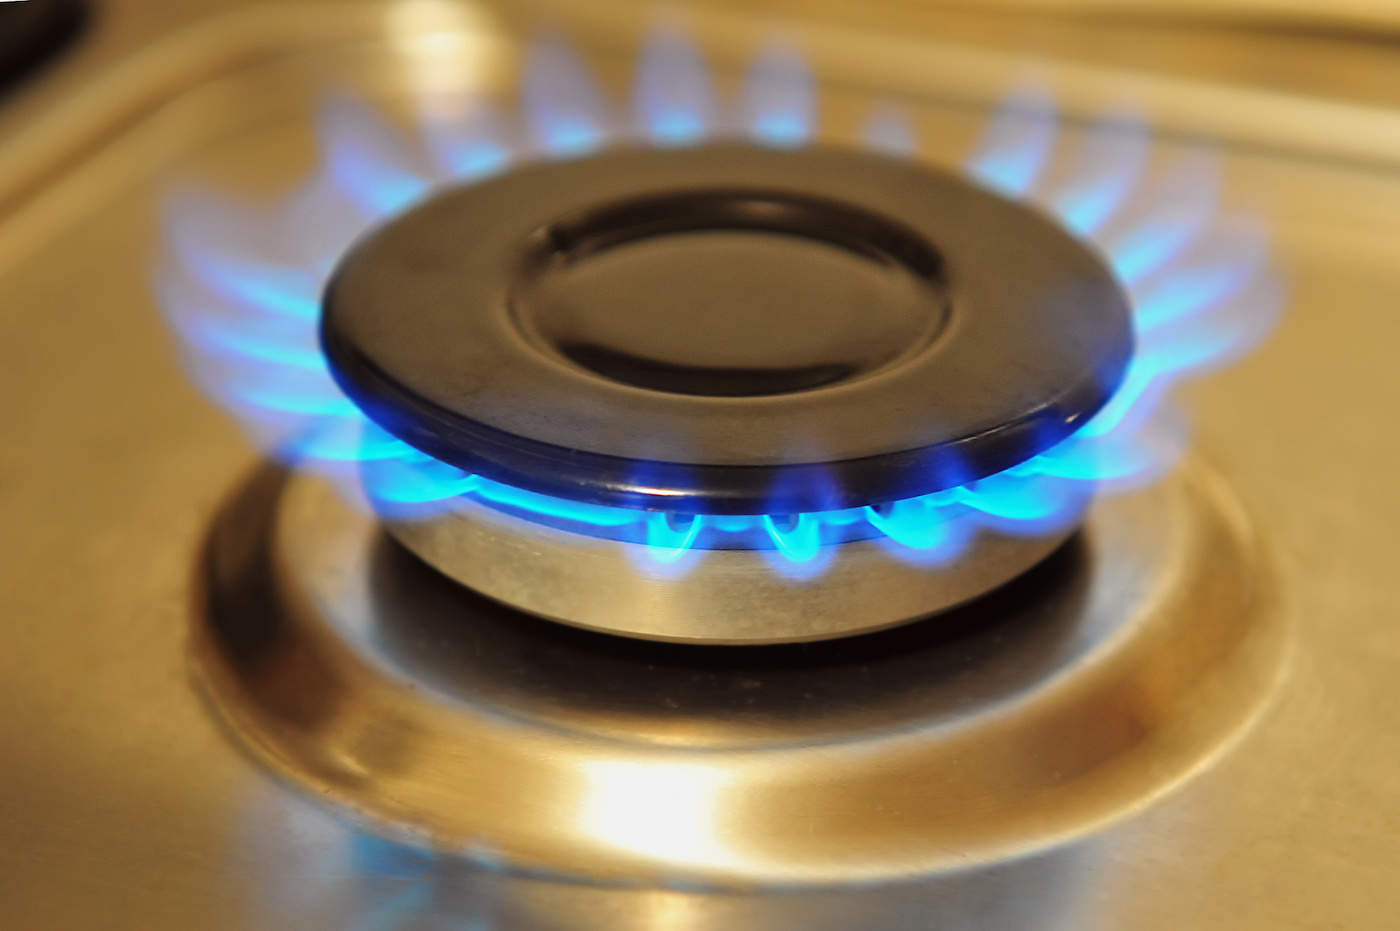 A natural gas stove outlet in a residential home